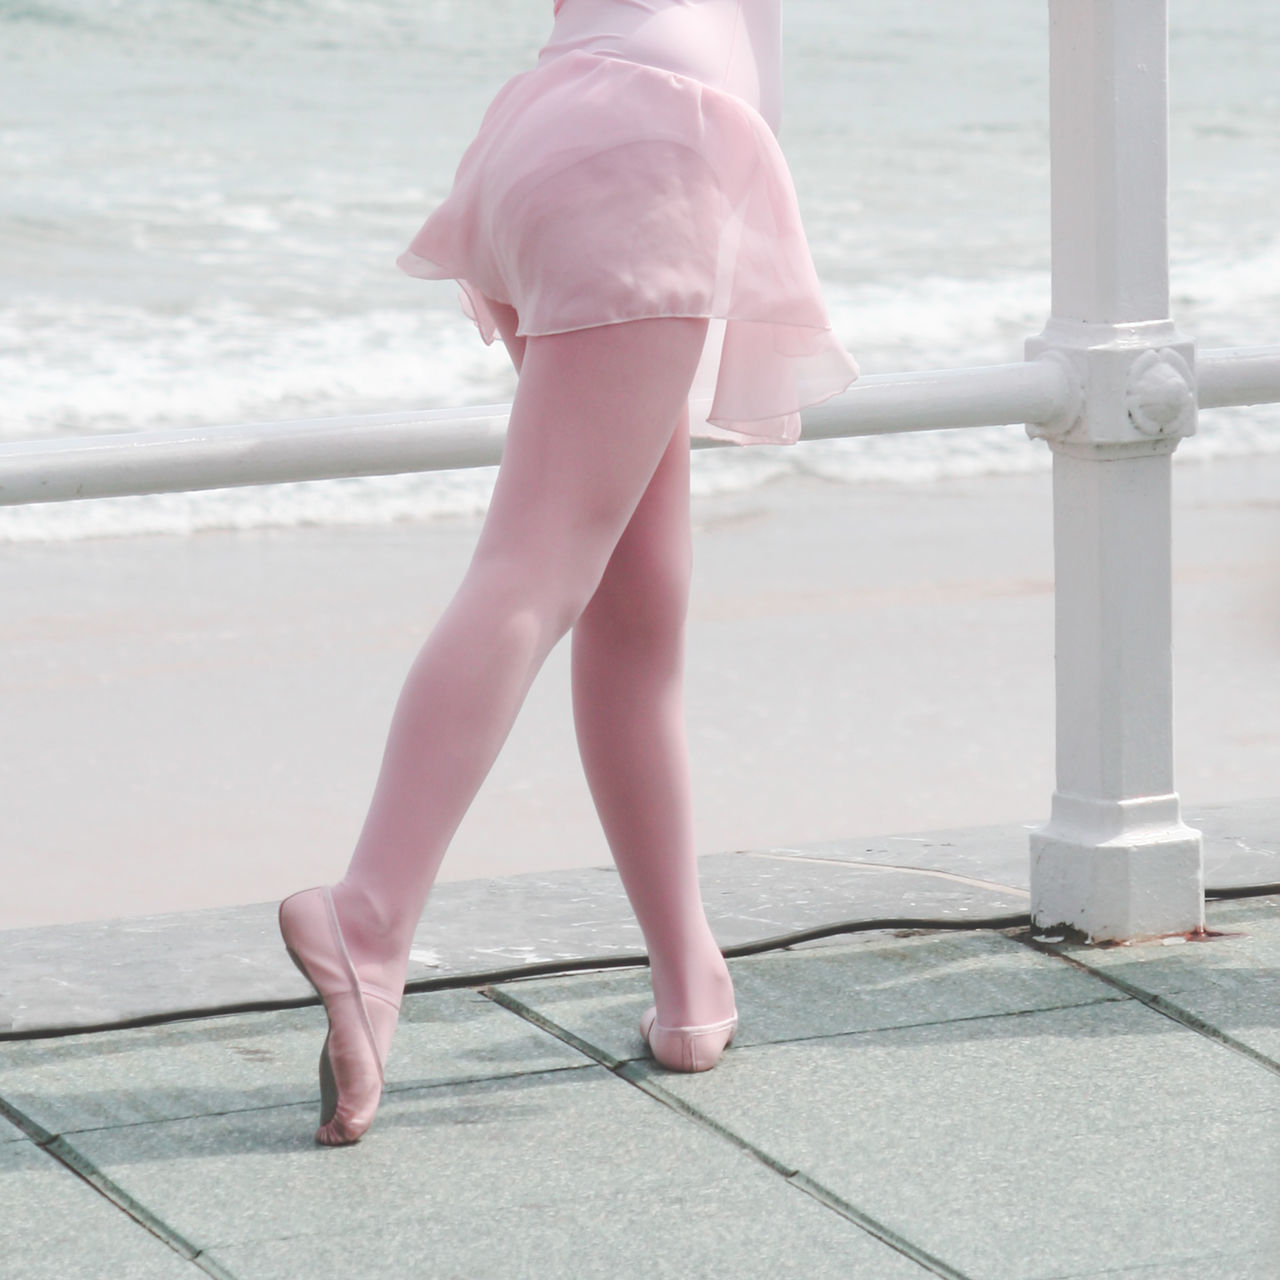 A girl in ballet class in the beach Ballerina Ballet Ballet Class Ballet Dancer Ballet Shoes Body Part Close-up Clothing break the Mold Feet Focus On Foreground Girl Human Legs Leisure Activity Lifestyles Outdoors Part Of Pink Color Pretty Promenade Sea Water break the mold